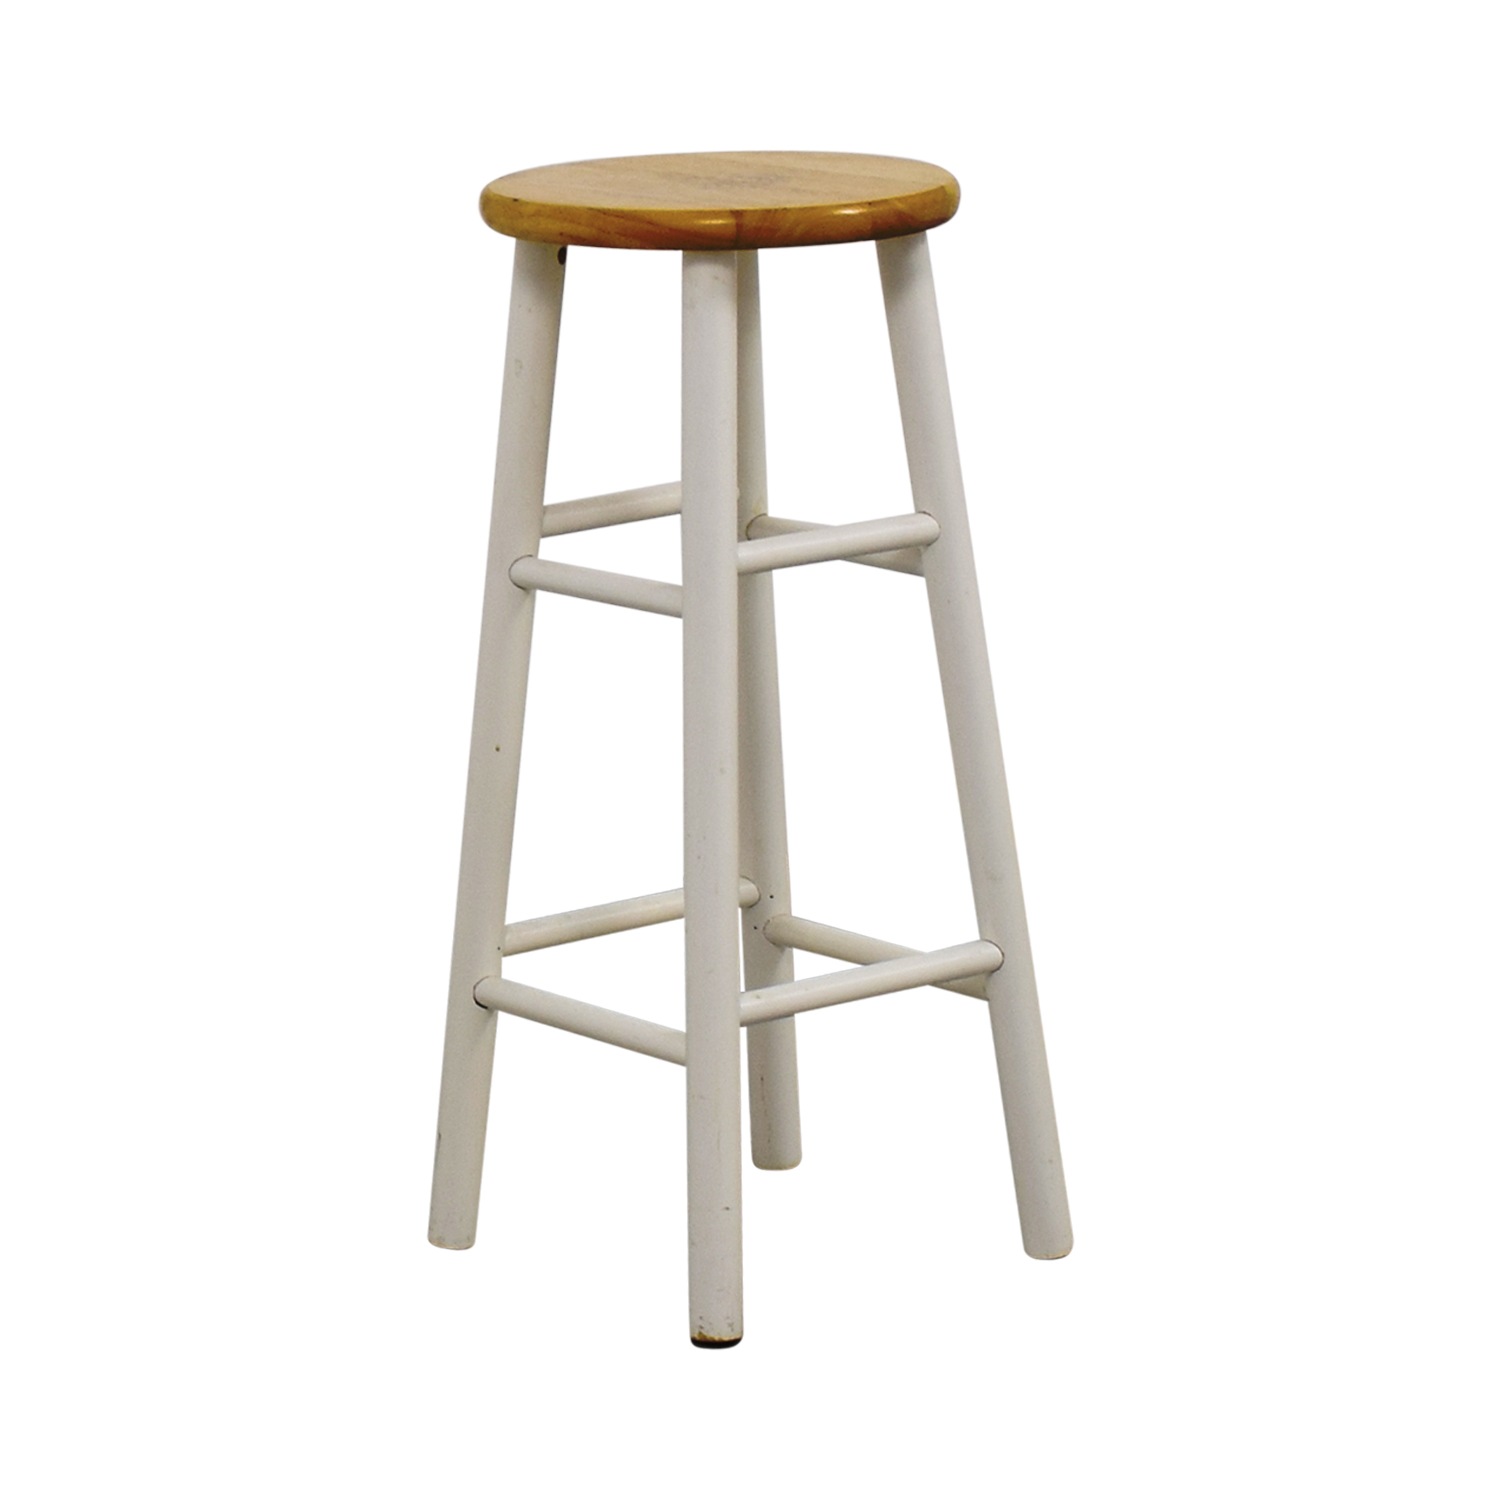 Off White Wooden Bar Stools Mark Webster Padstow Off